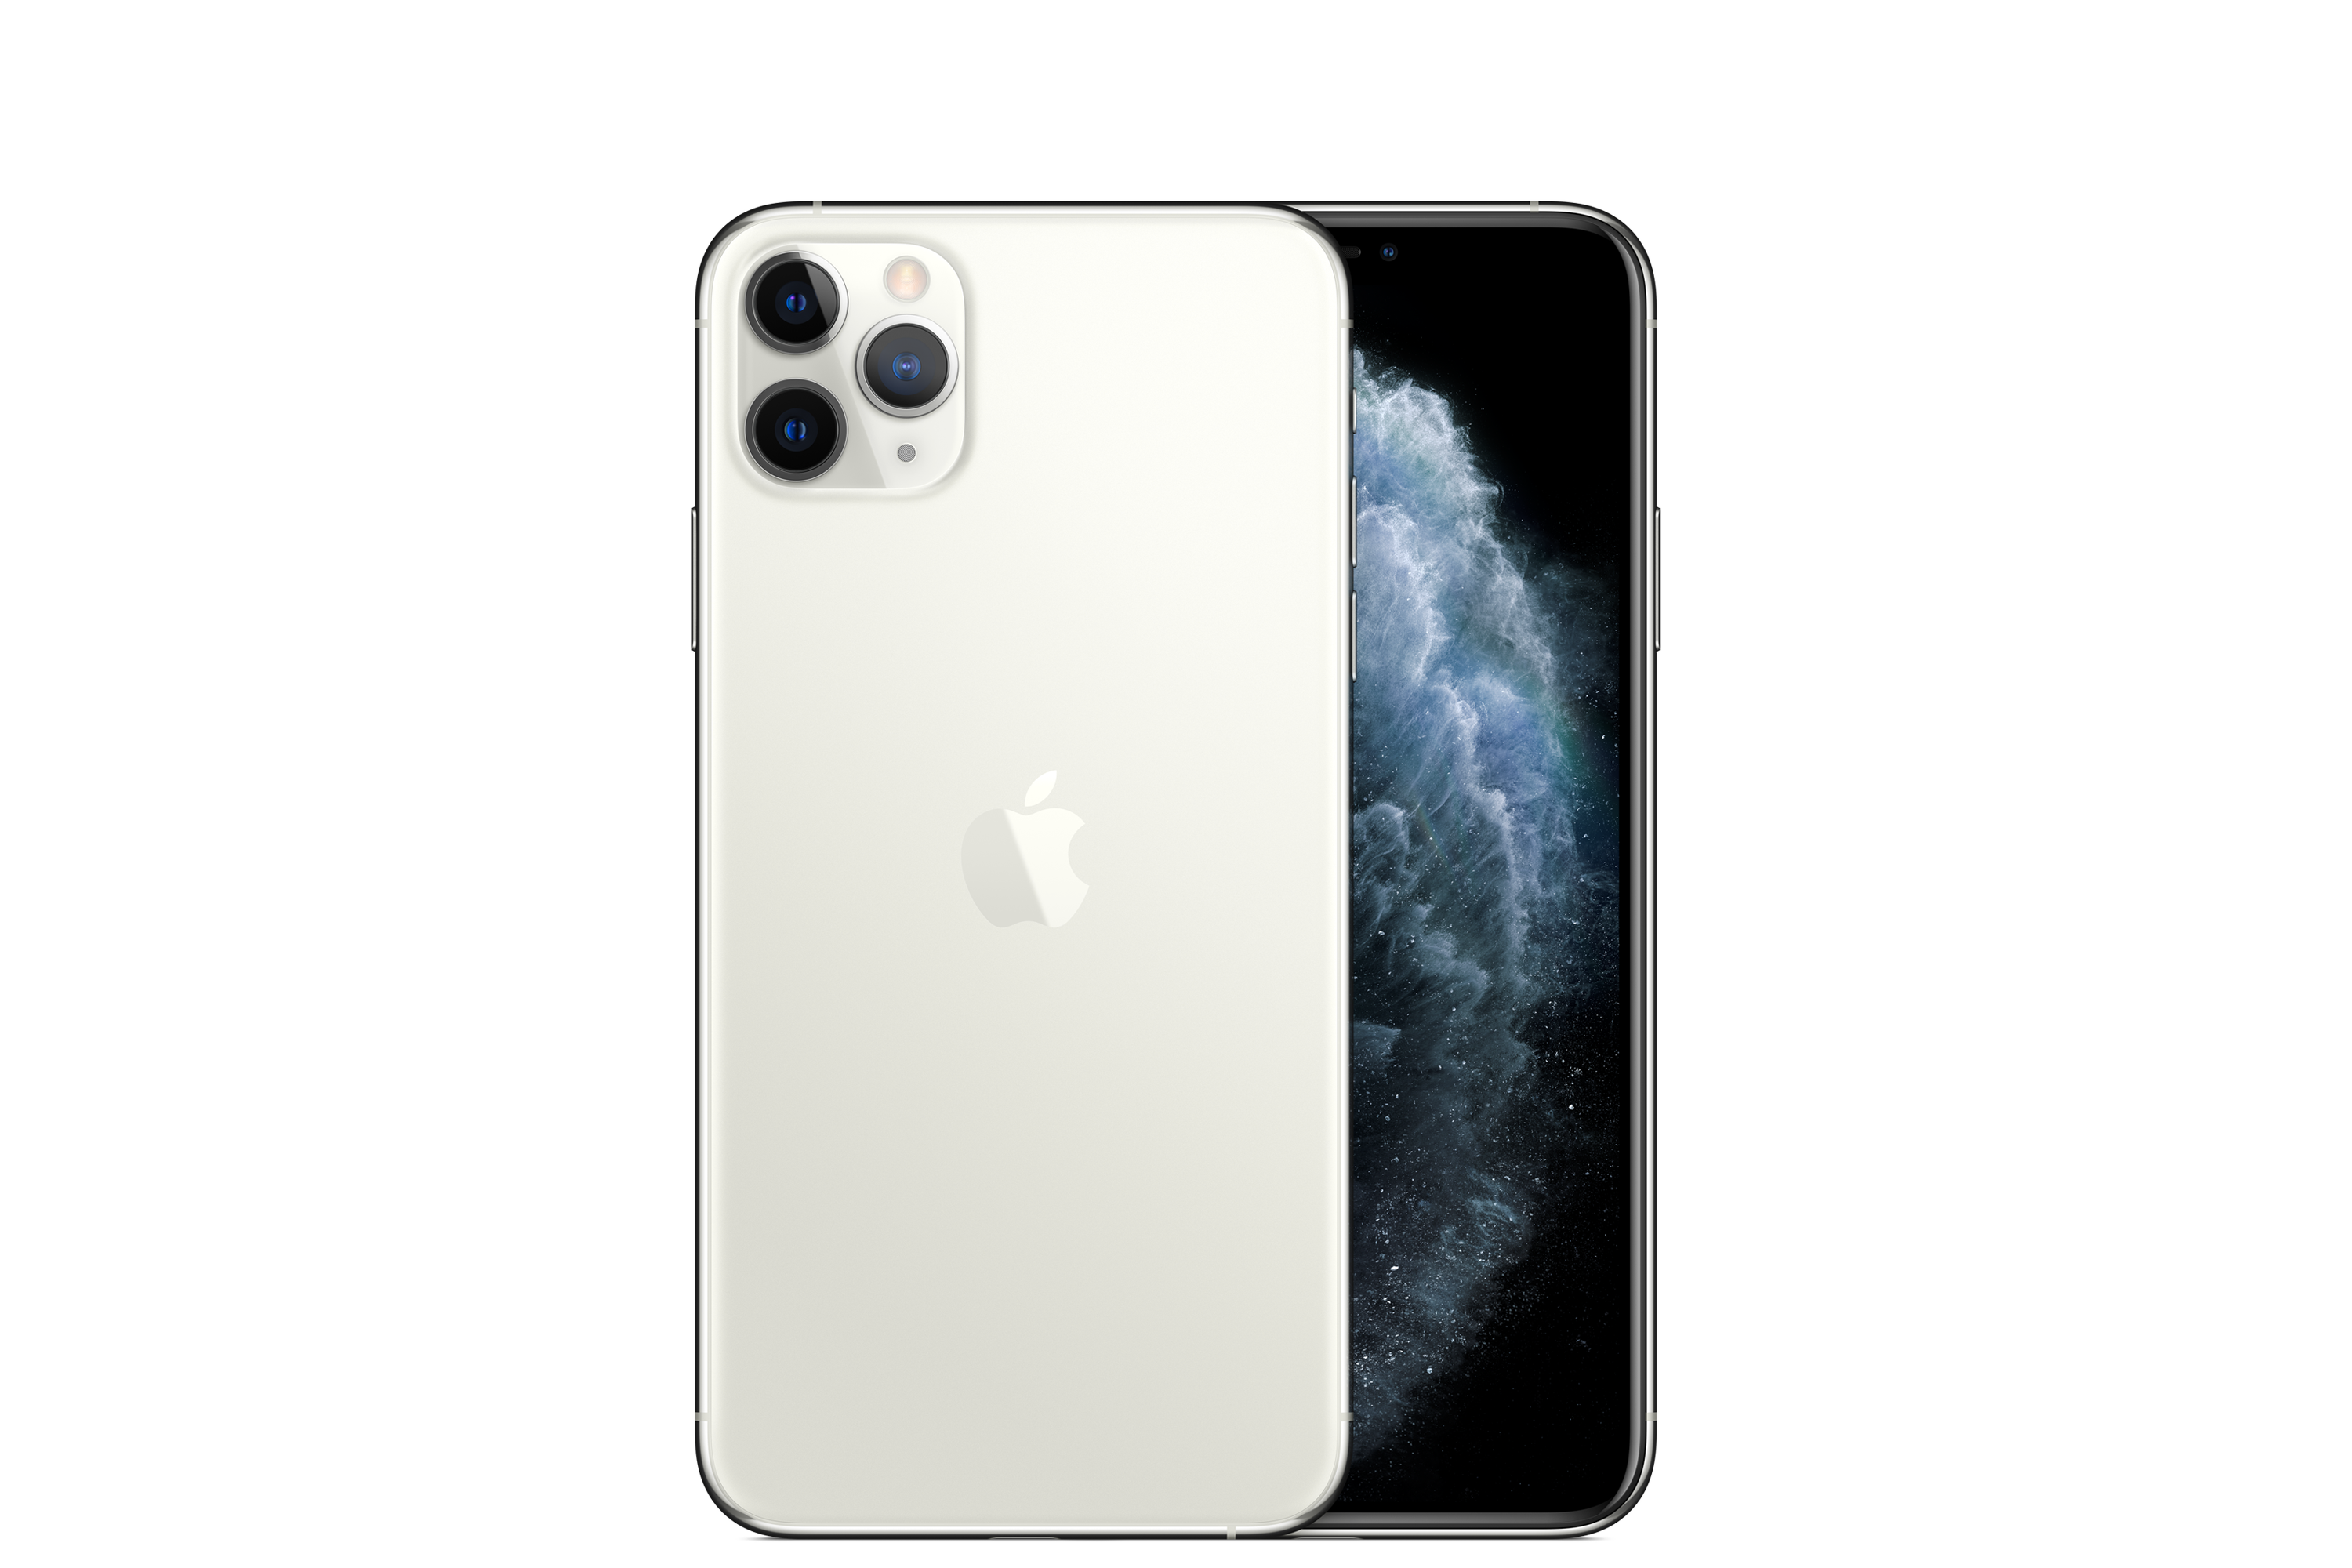 Smartphone Iphone 11 Pro Max Silver Png Image Iphone Iphone 11 Smartphone